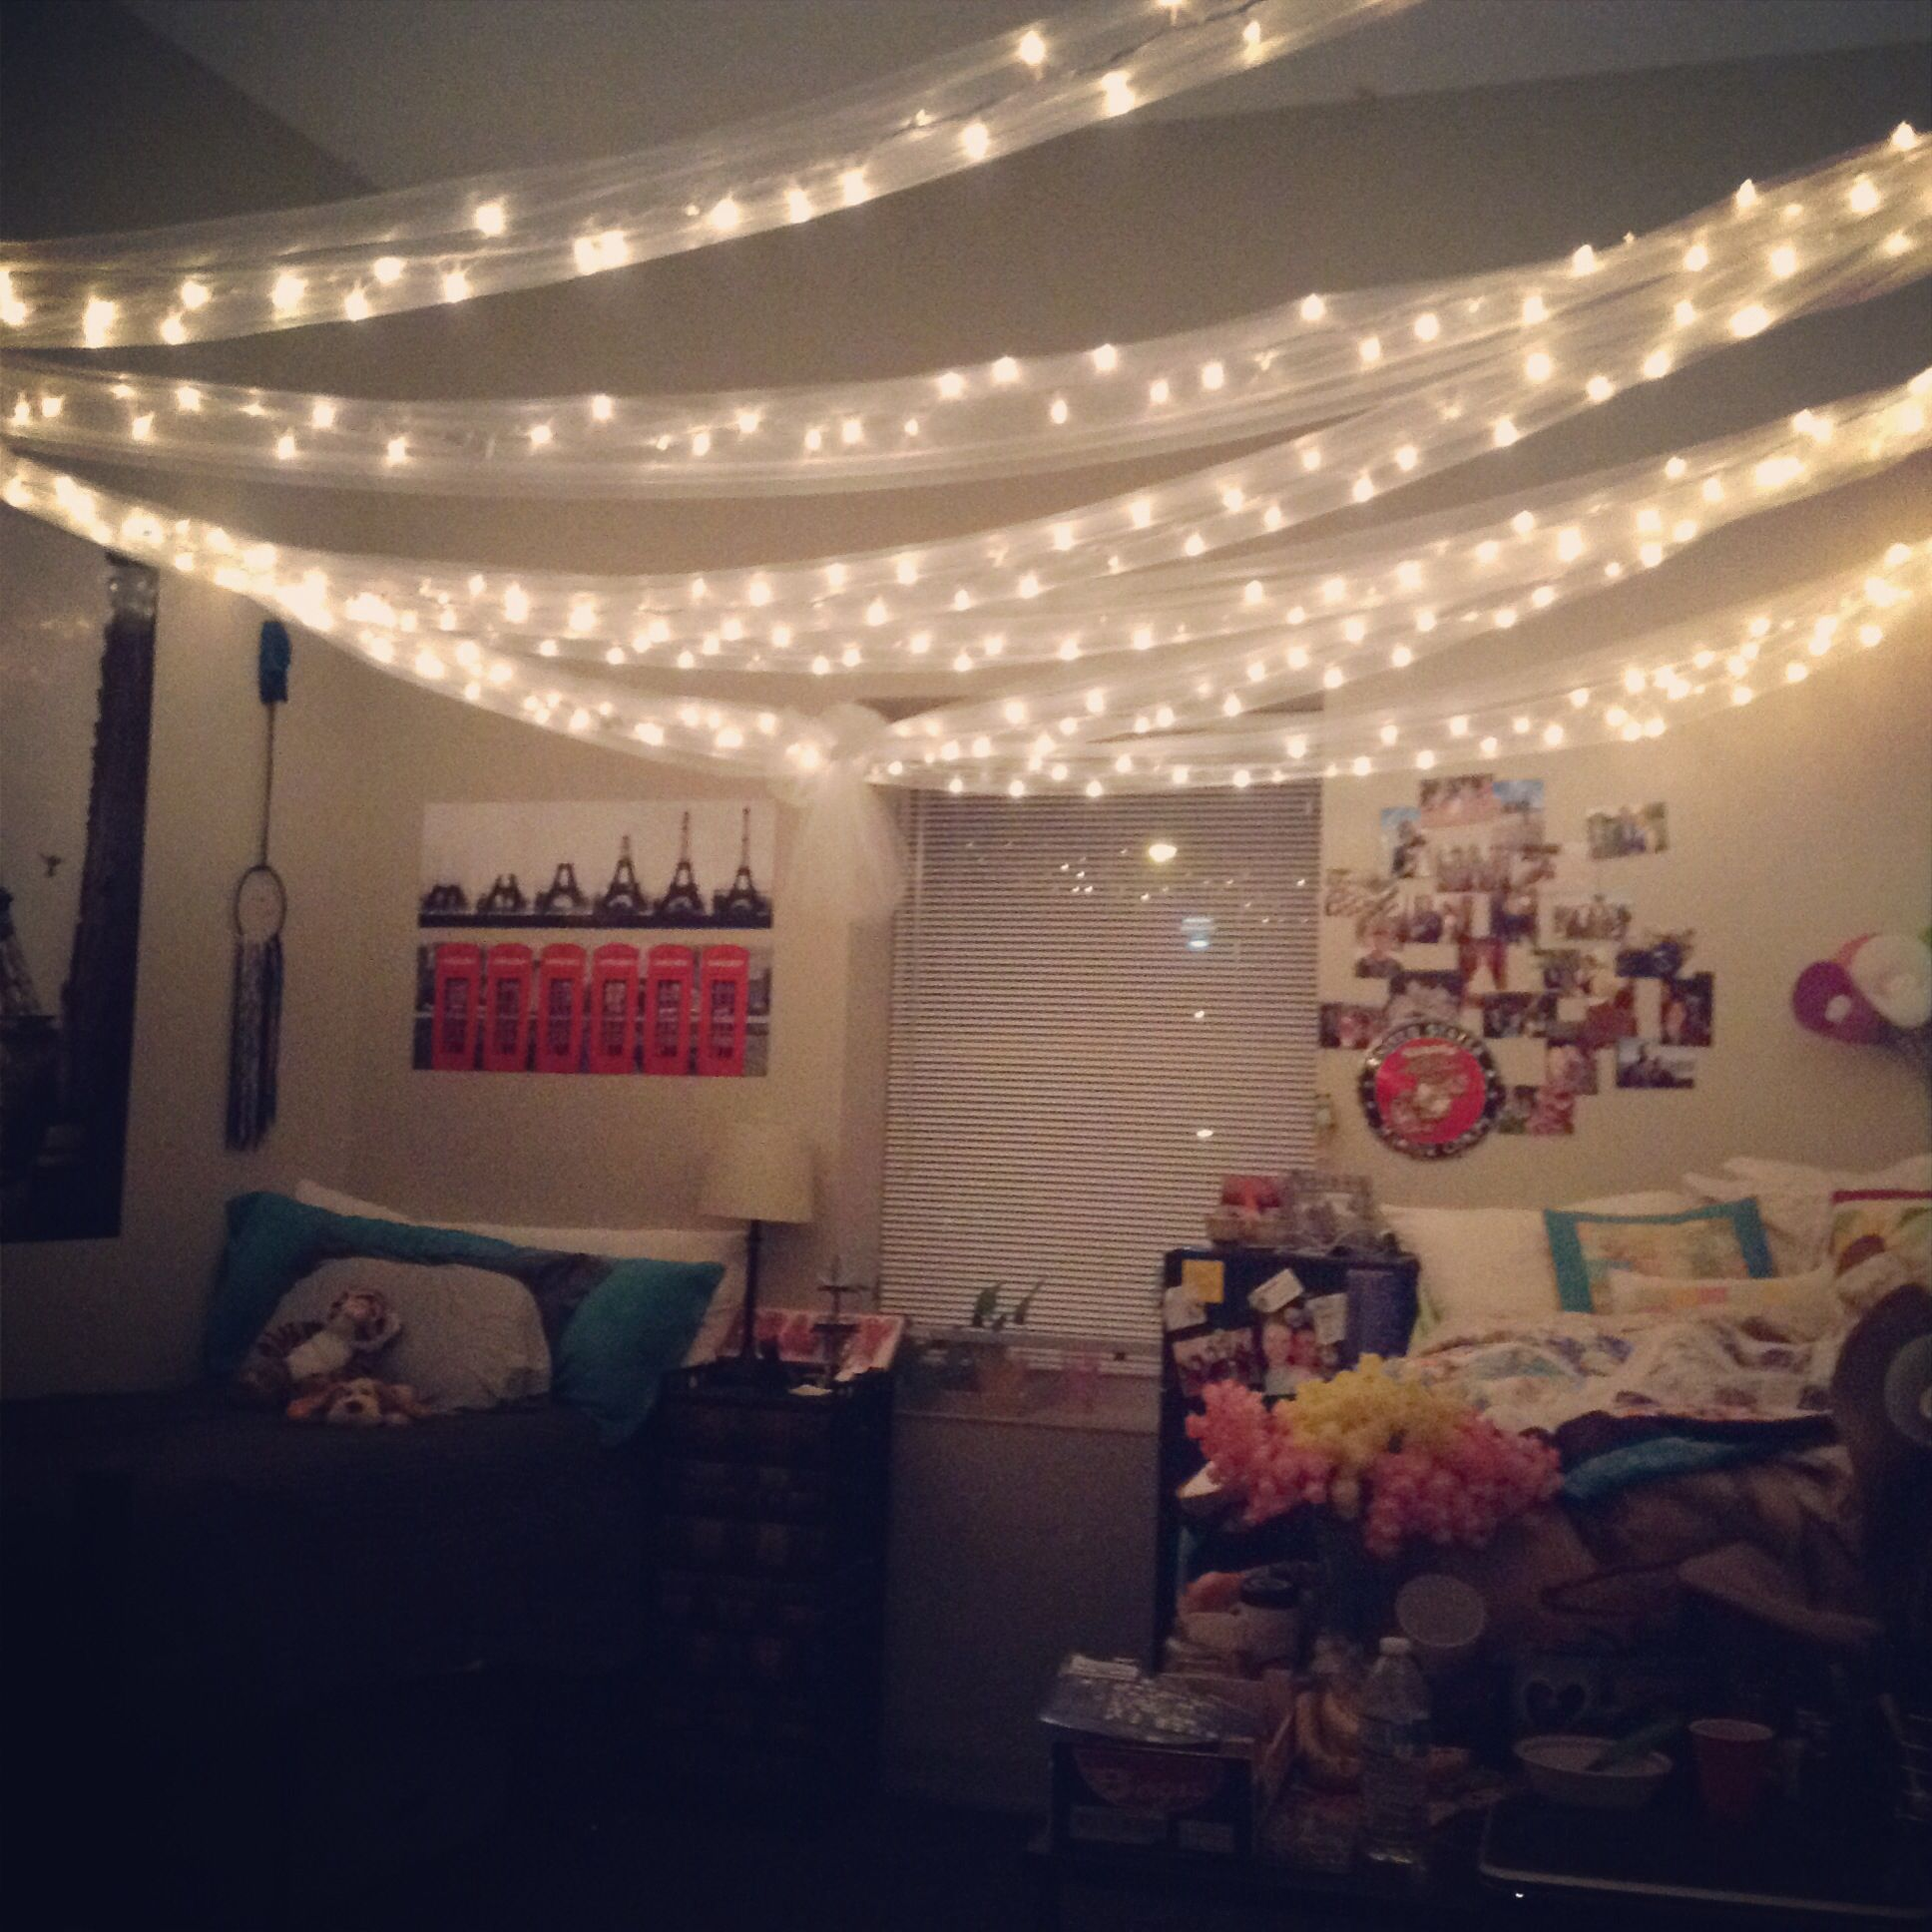 Christmas Lights In A Dorm Room For Decoration. My